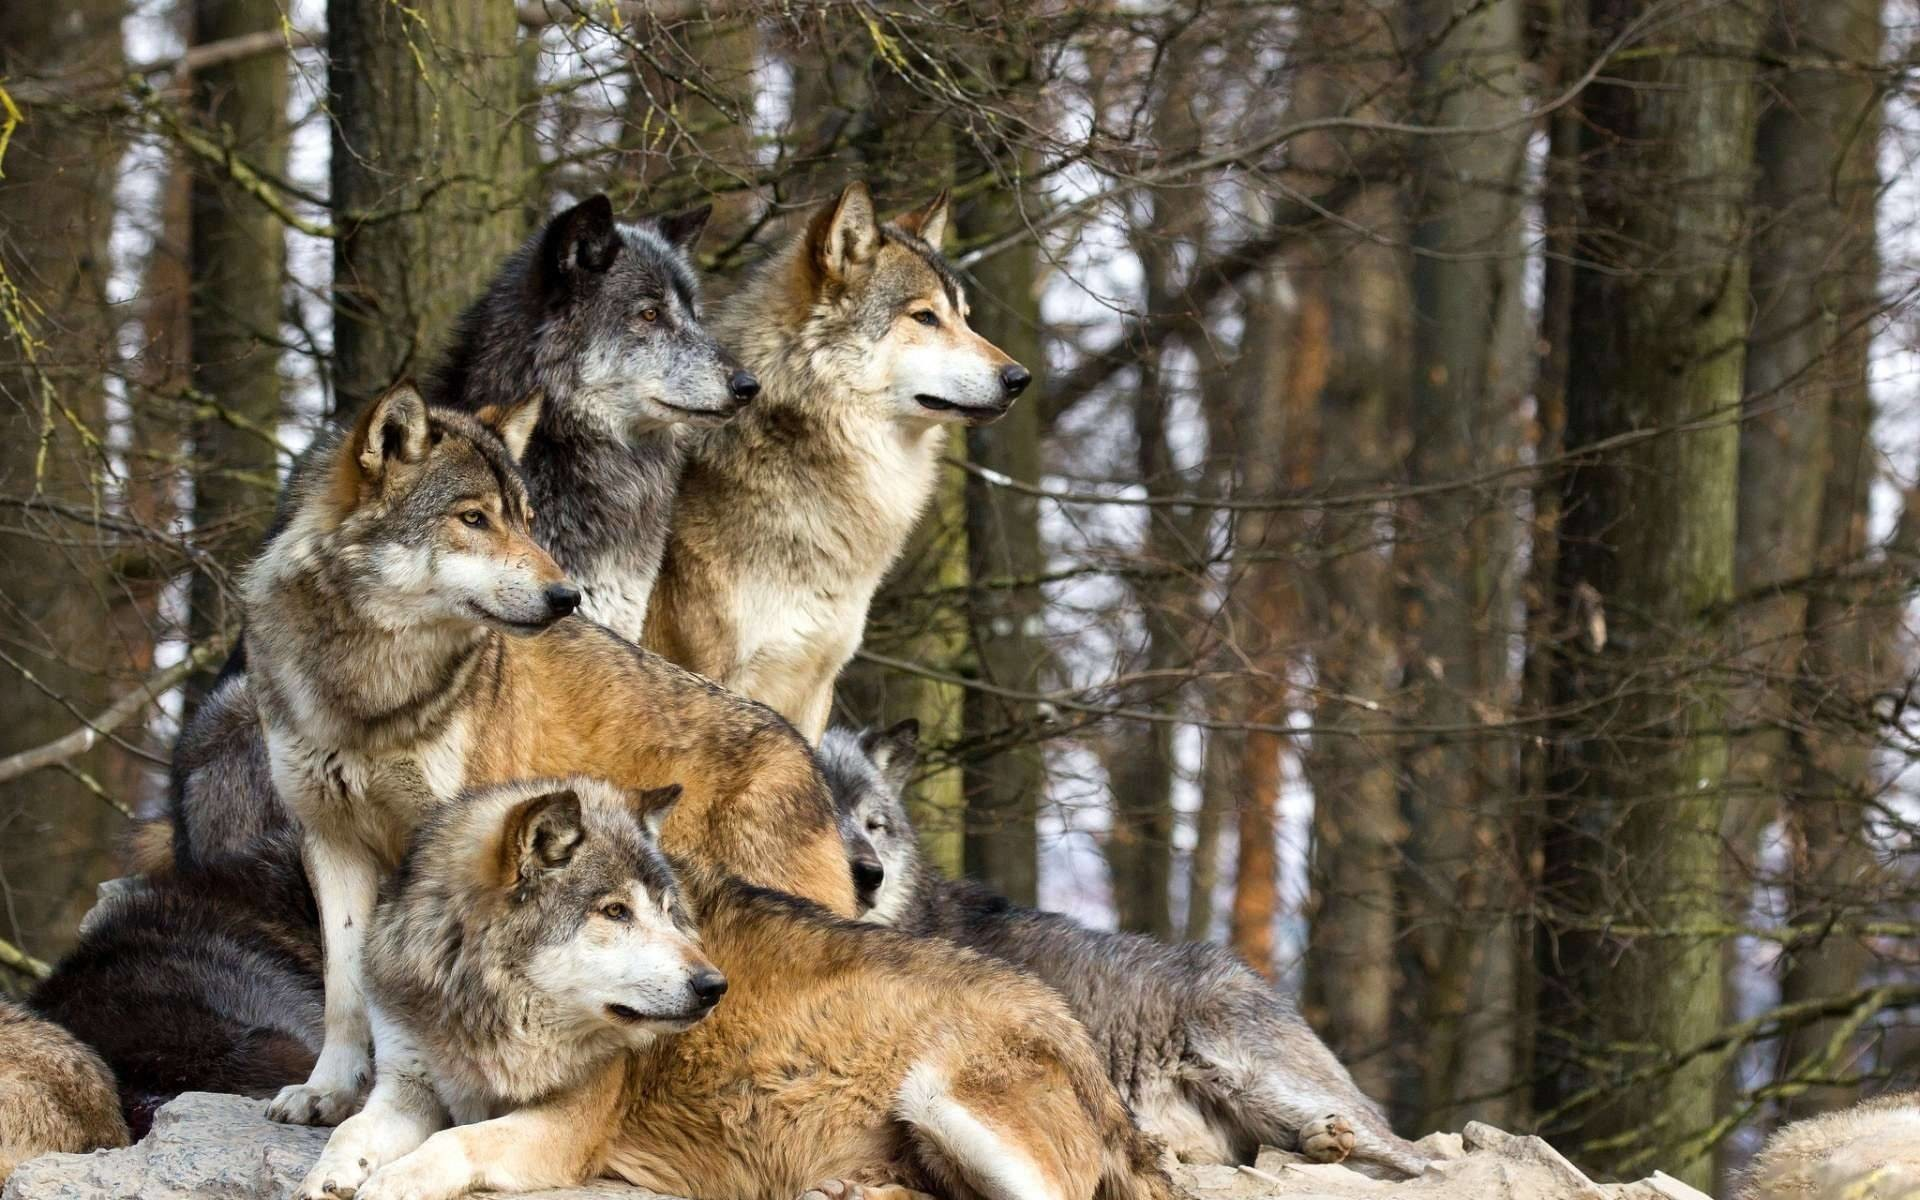 family of wolves, also known as a pack. Fit for a wallpaper.